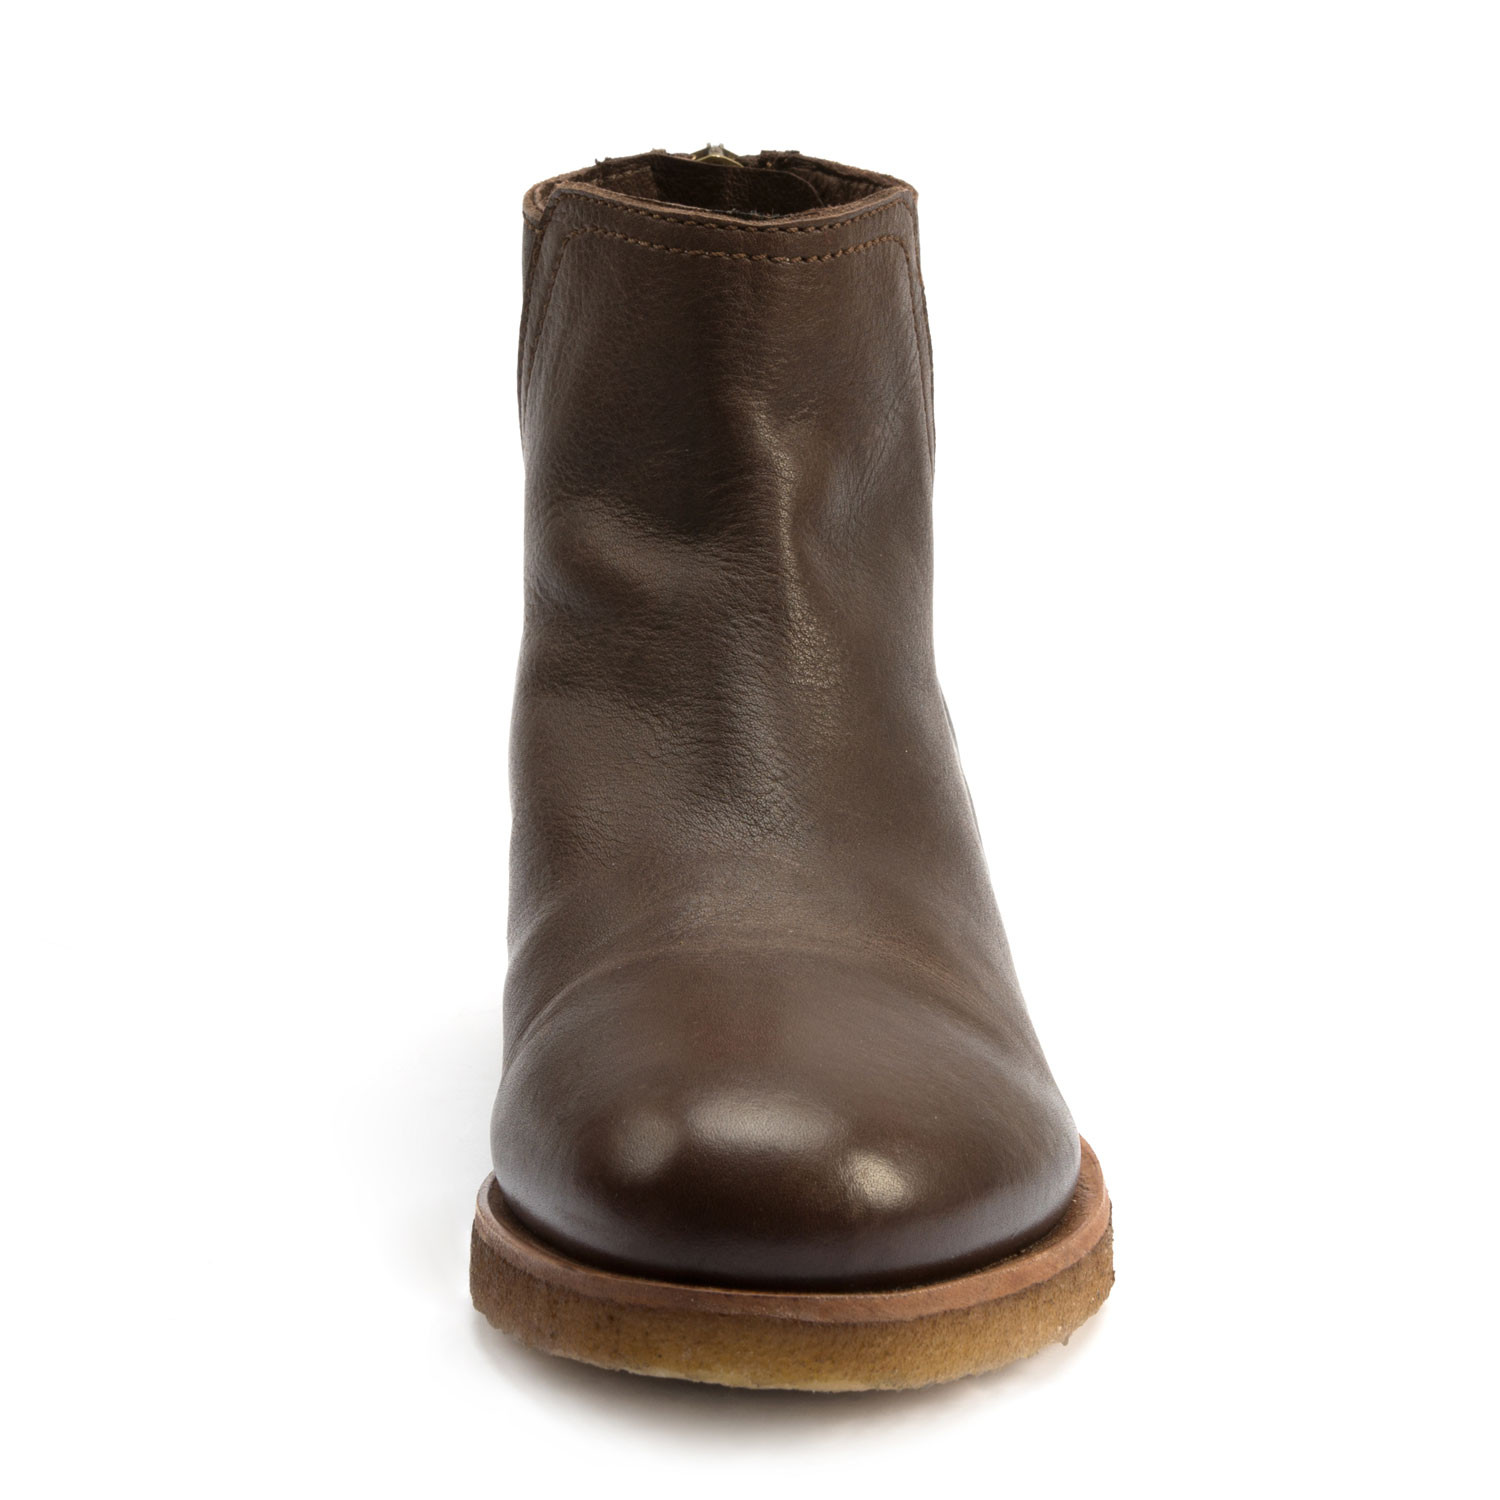 Boots, mocca